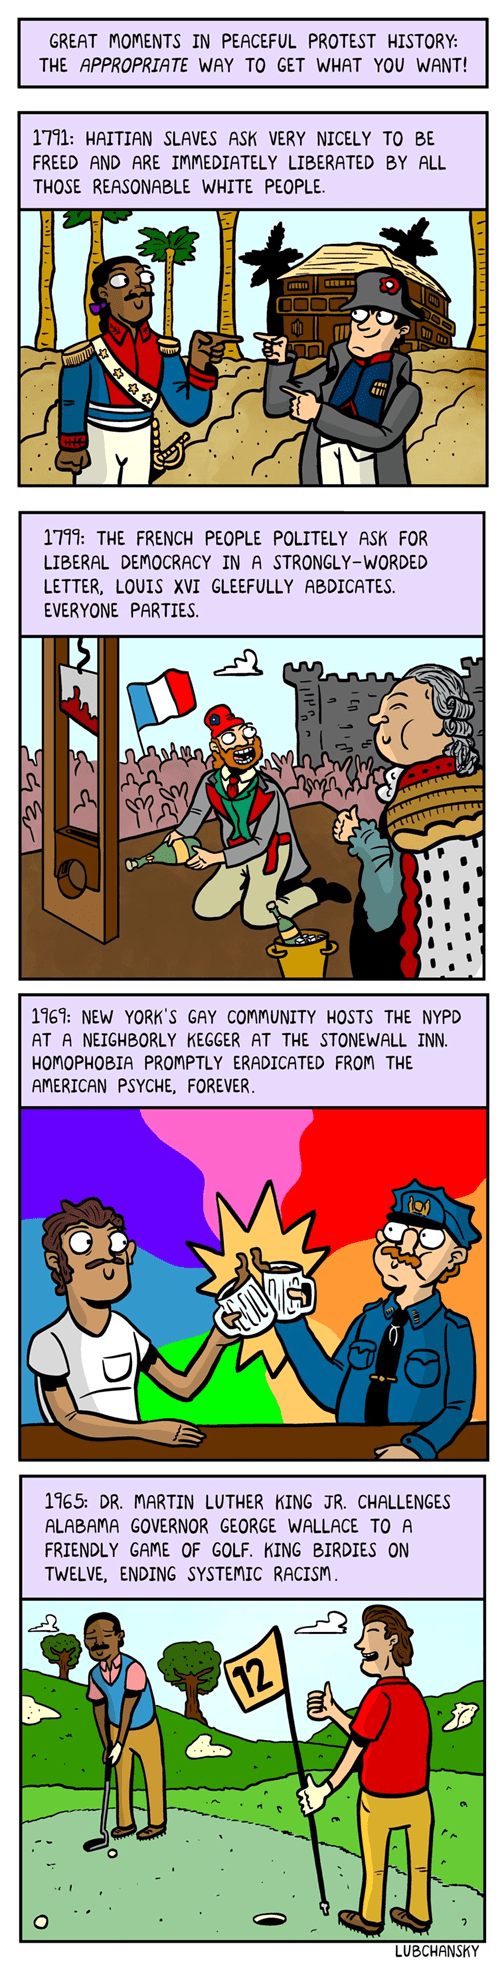 funny-web-comics-great-moments-in-peaceful-protest-history